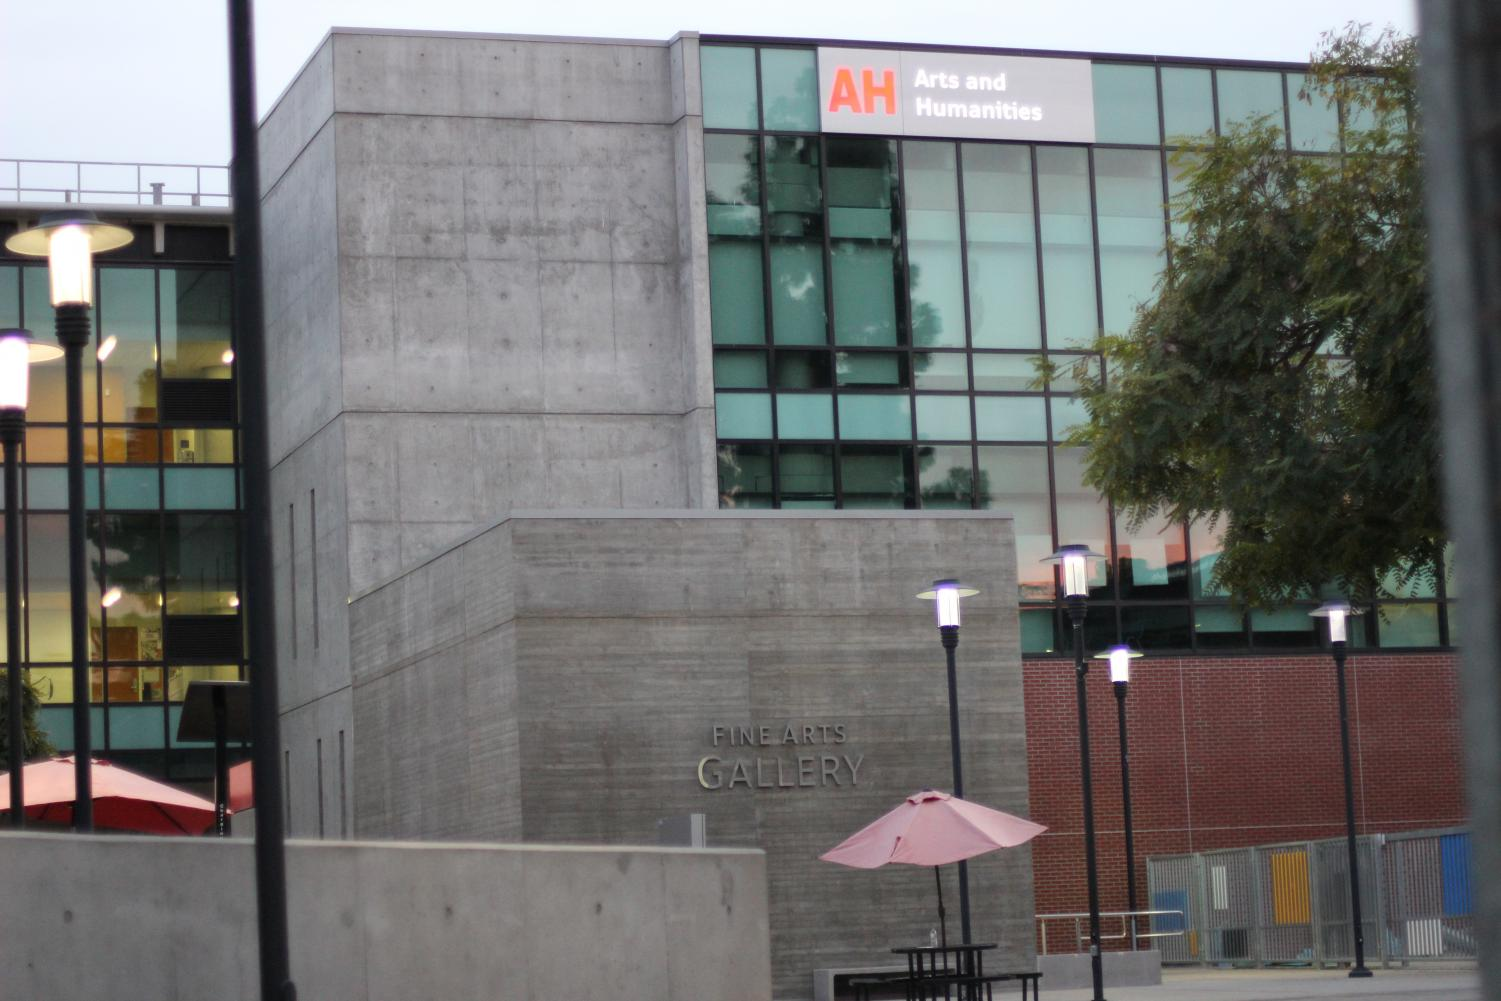 The San Diego City College Arts and Humanities building.  Photo by Sonny Garibay